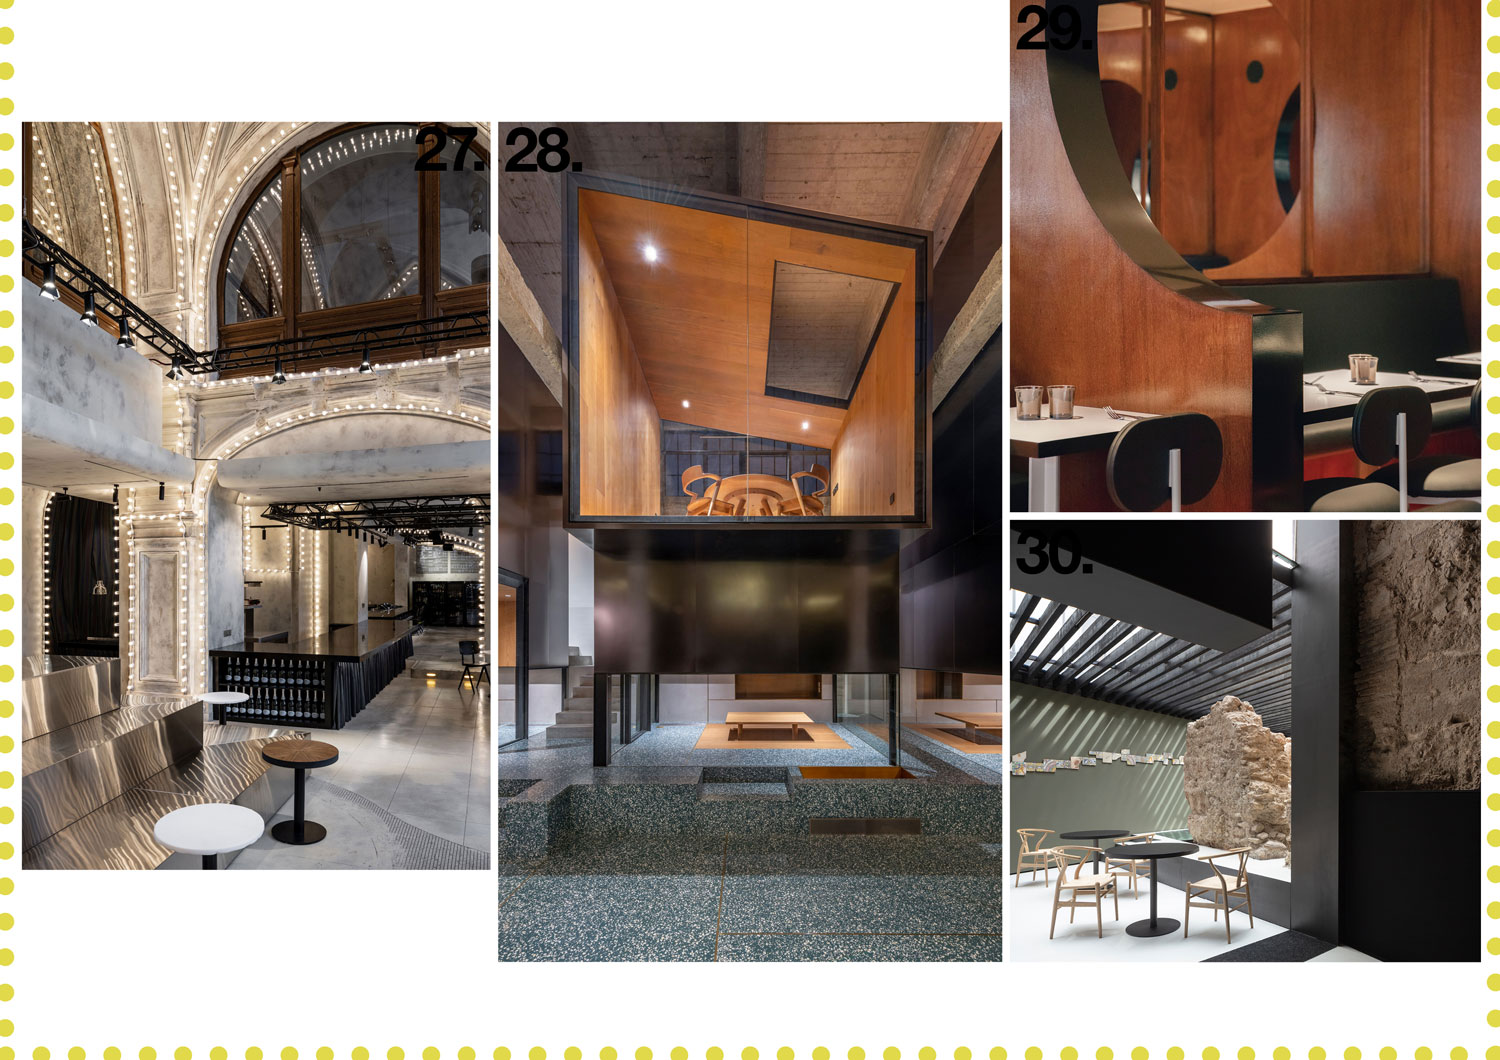 Hospitality & Restaurant Interiors 2019 Archive | Yellowtrace